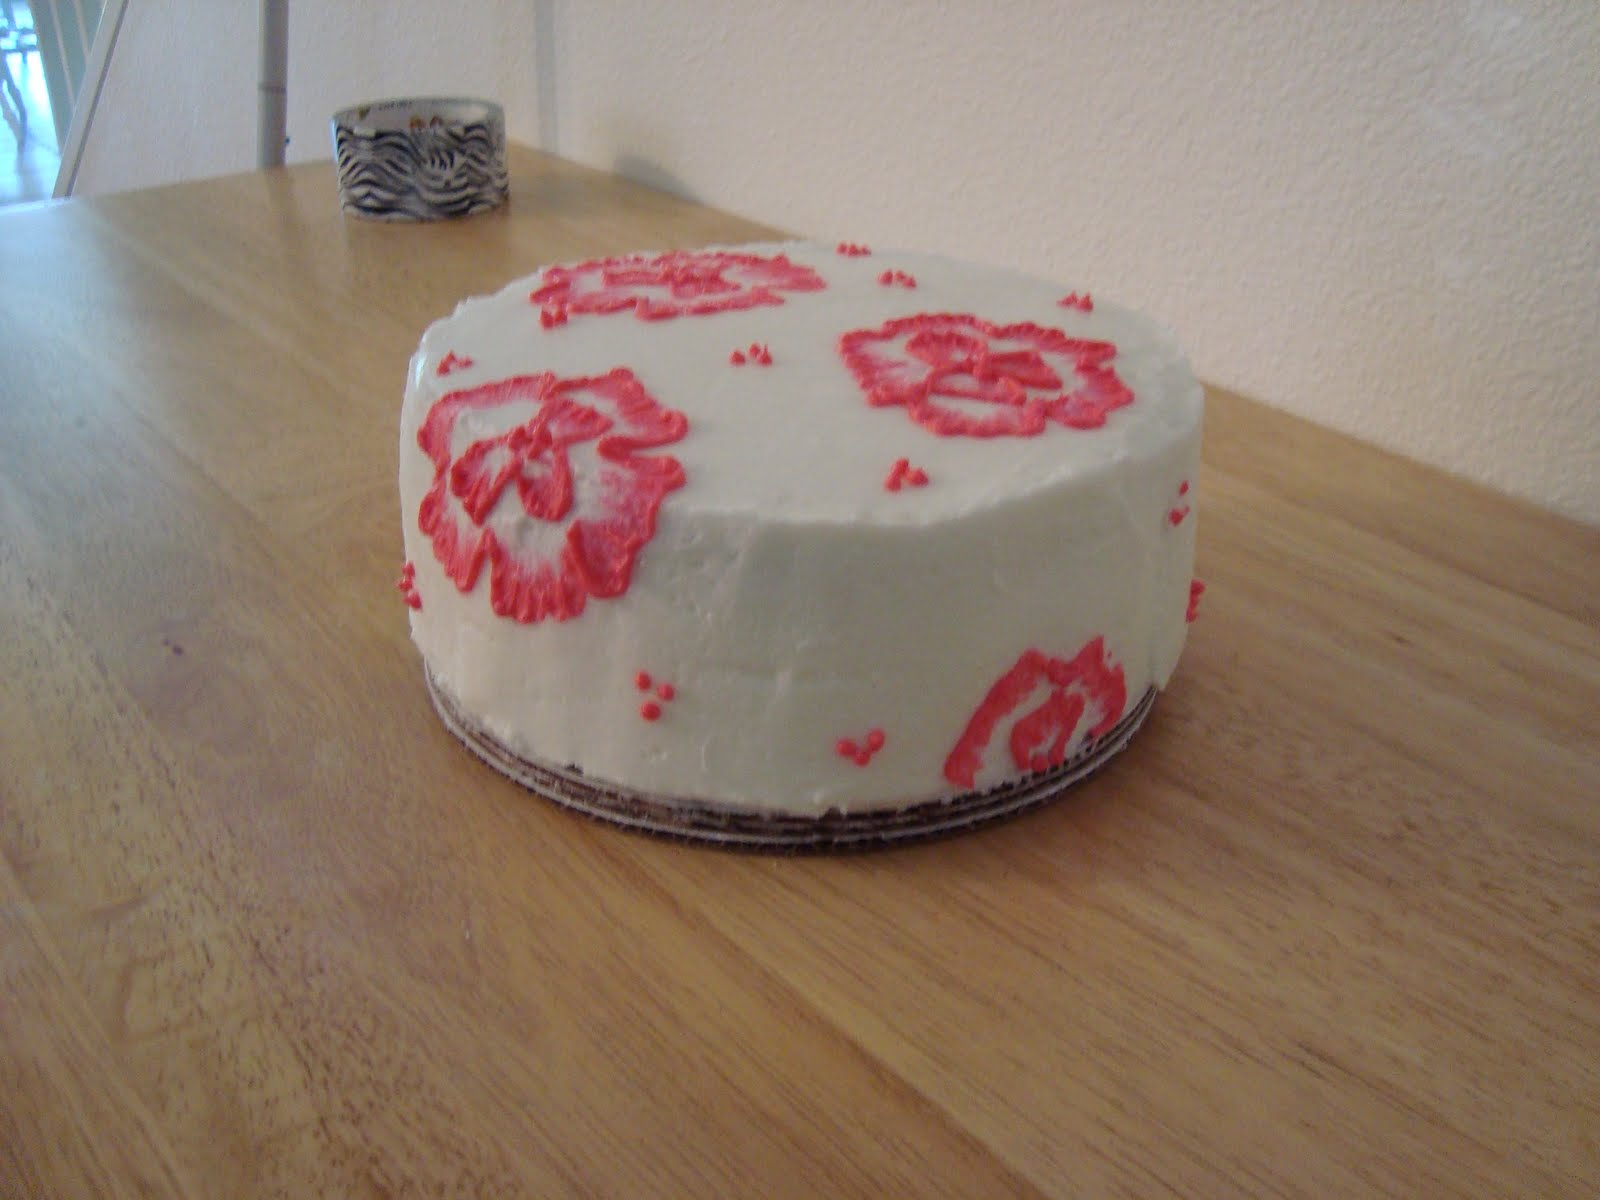 Cake Decorating Classes In Michaels : Scrumptious: September 2011